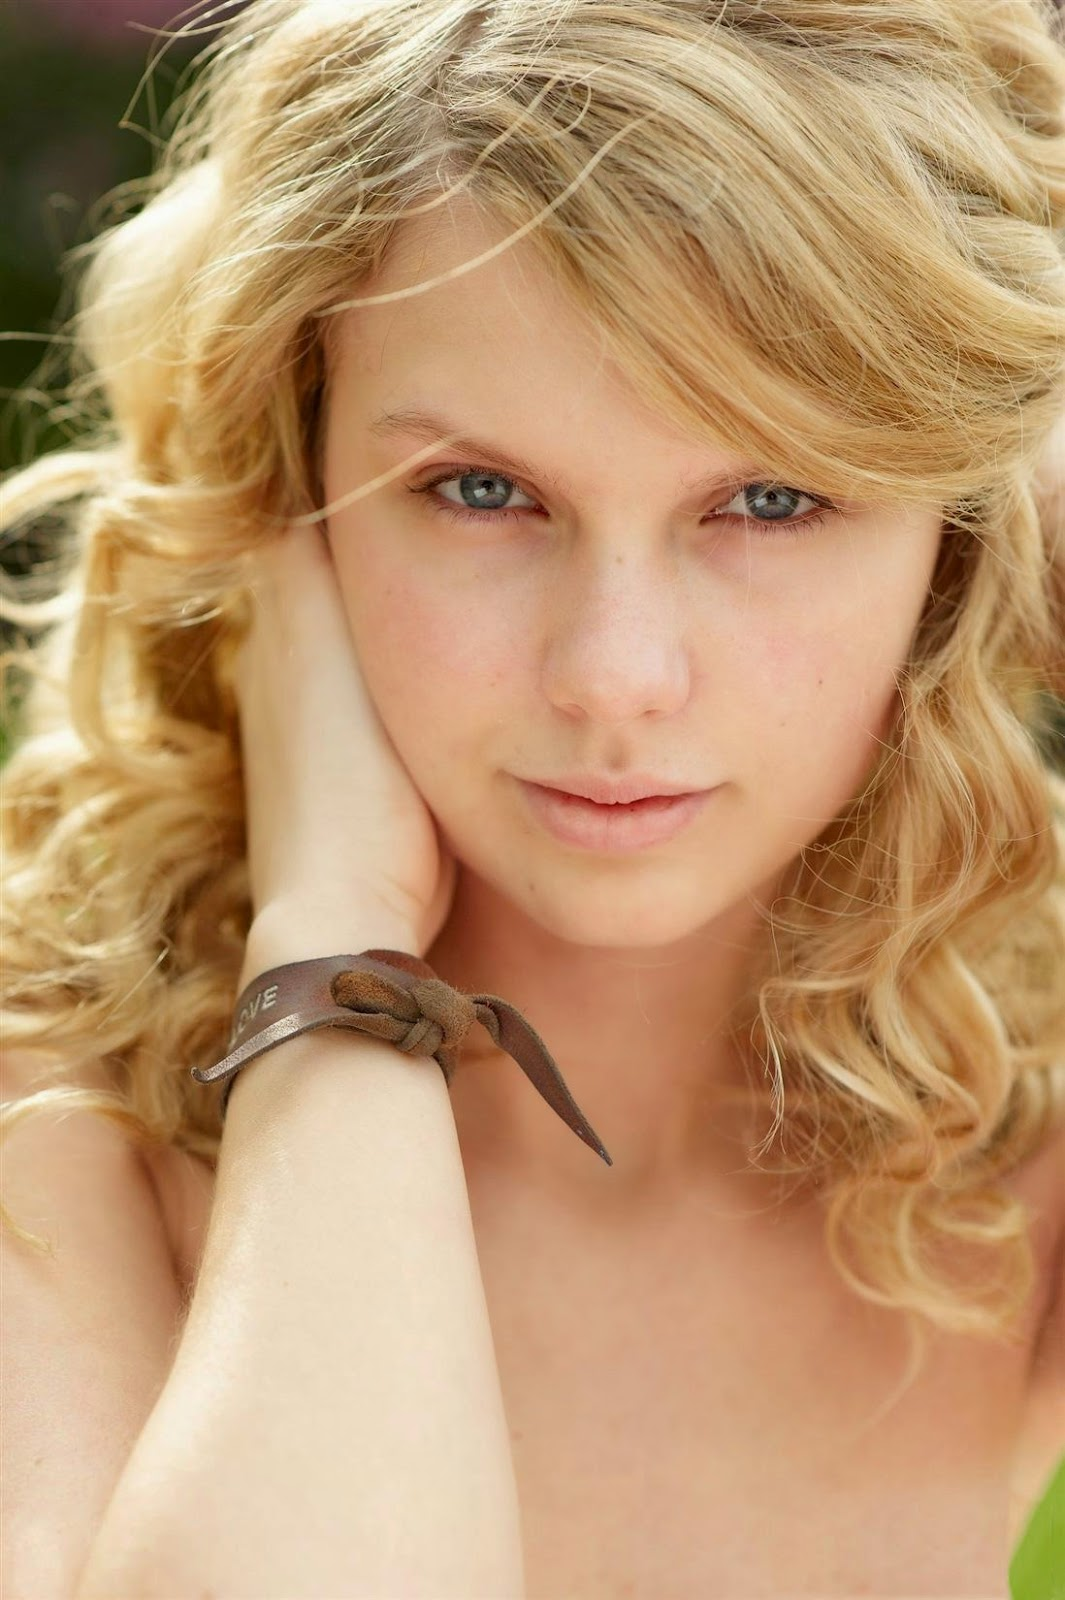 taylor swift No-Makeup Style makeup